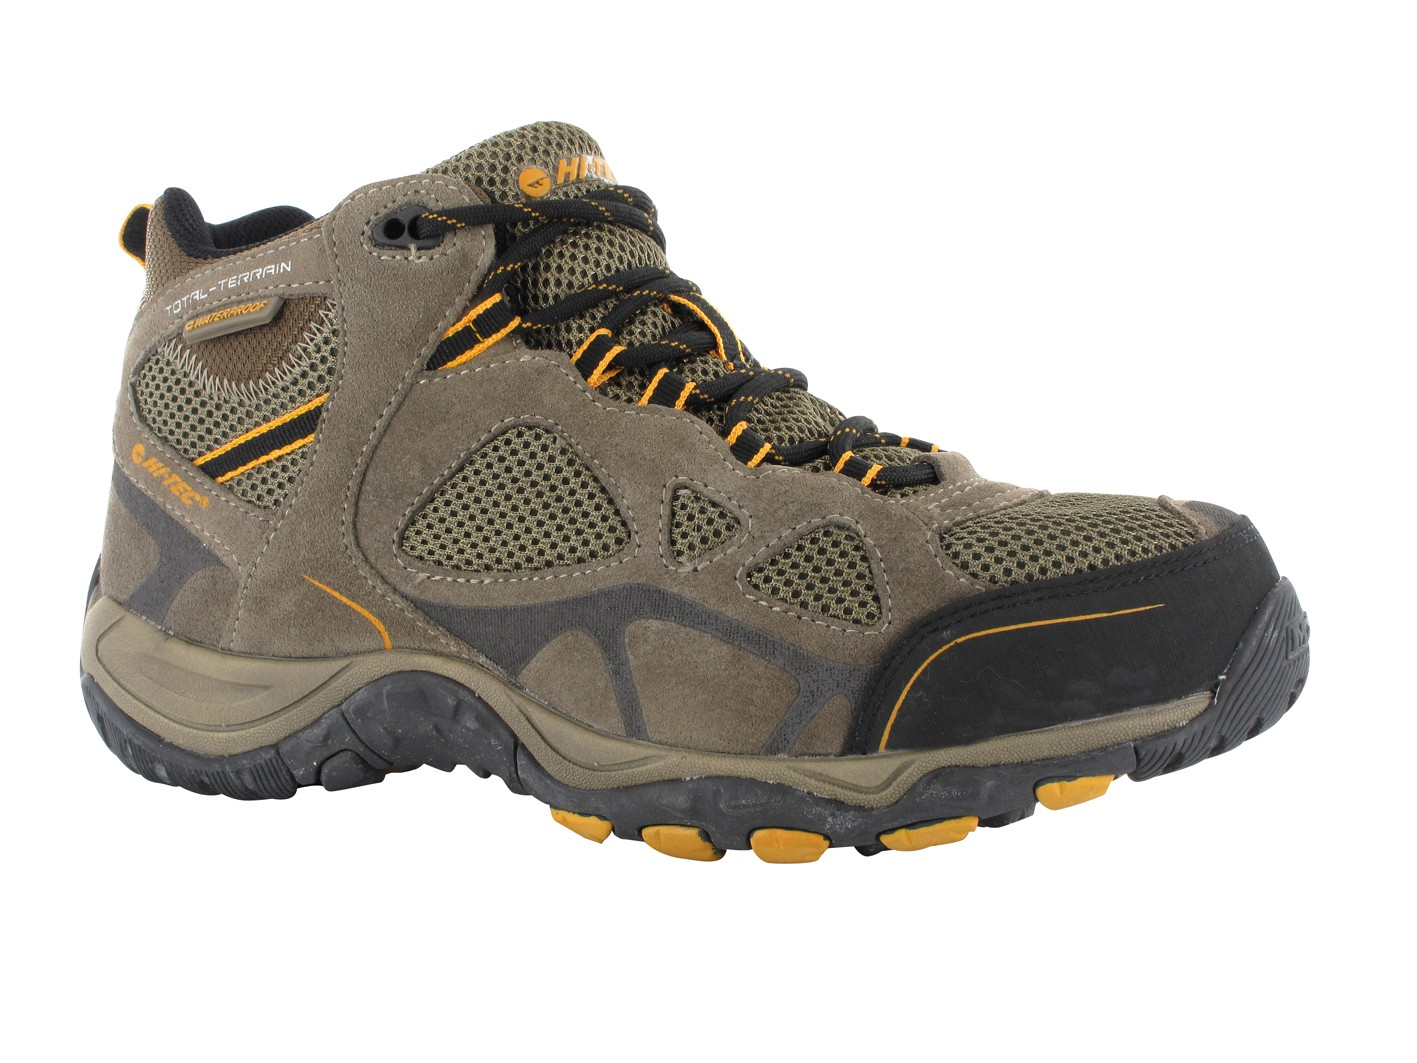 Hi-Tec Multisports Total Terrain Mid WP Men's Boots